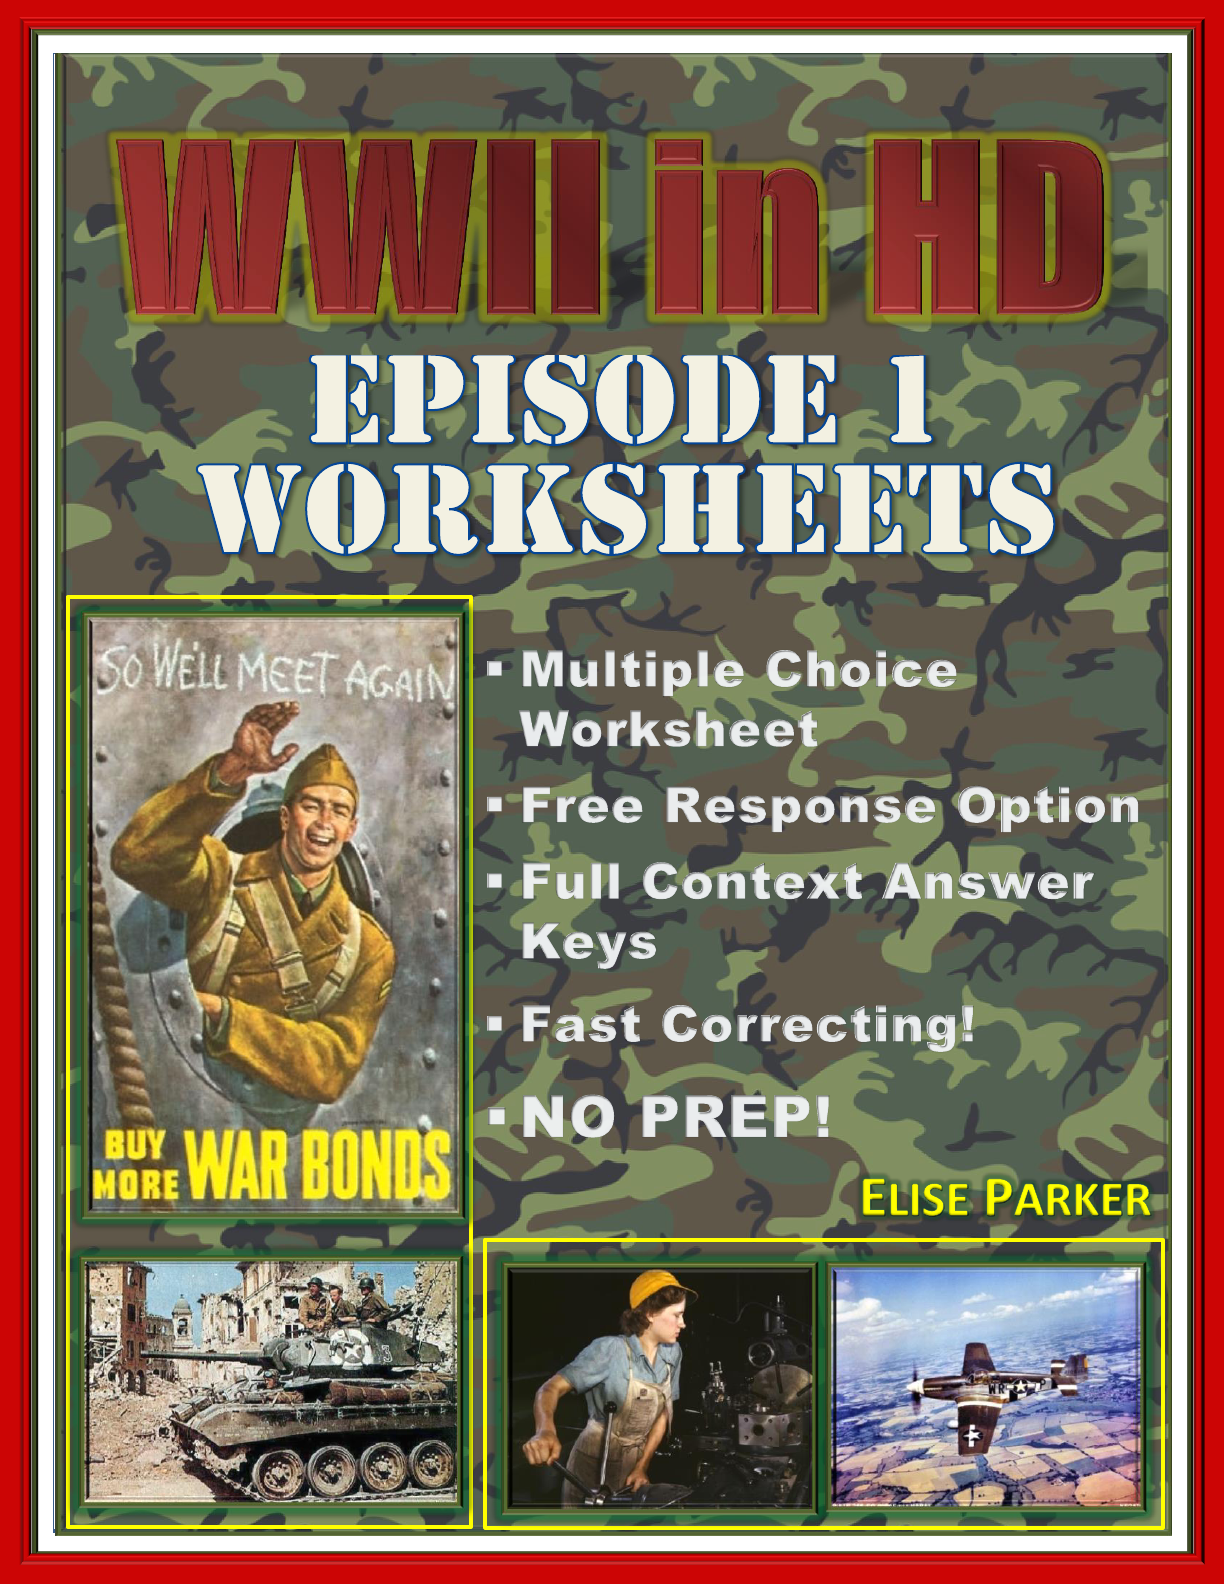 Wwii in hd worksheets episode 1 darkness falls darkness wwii in hd worksheet for episode 1 darkness falls multiple choice worksheet robcynllc Image collections